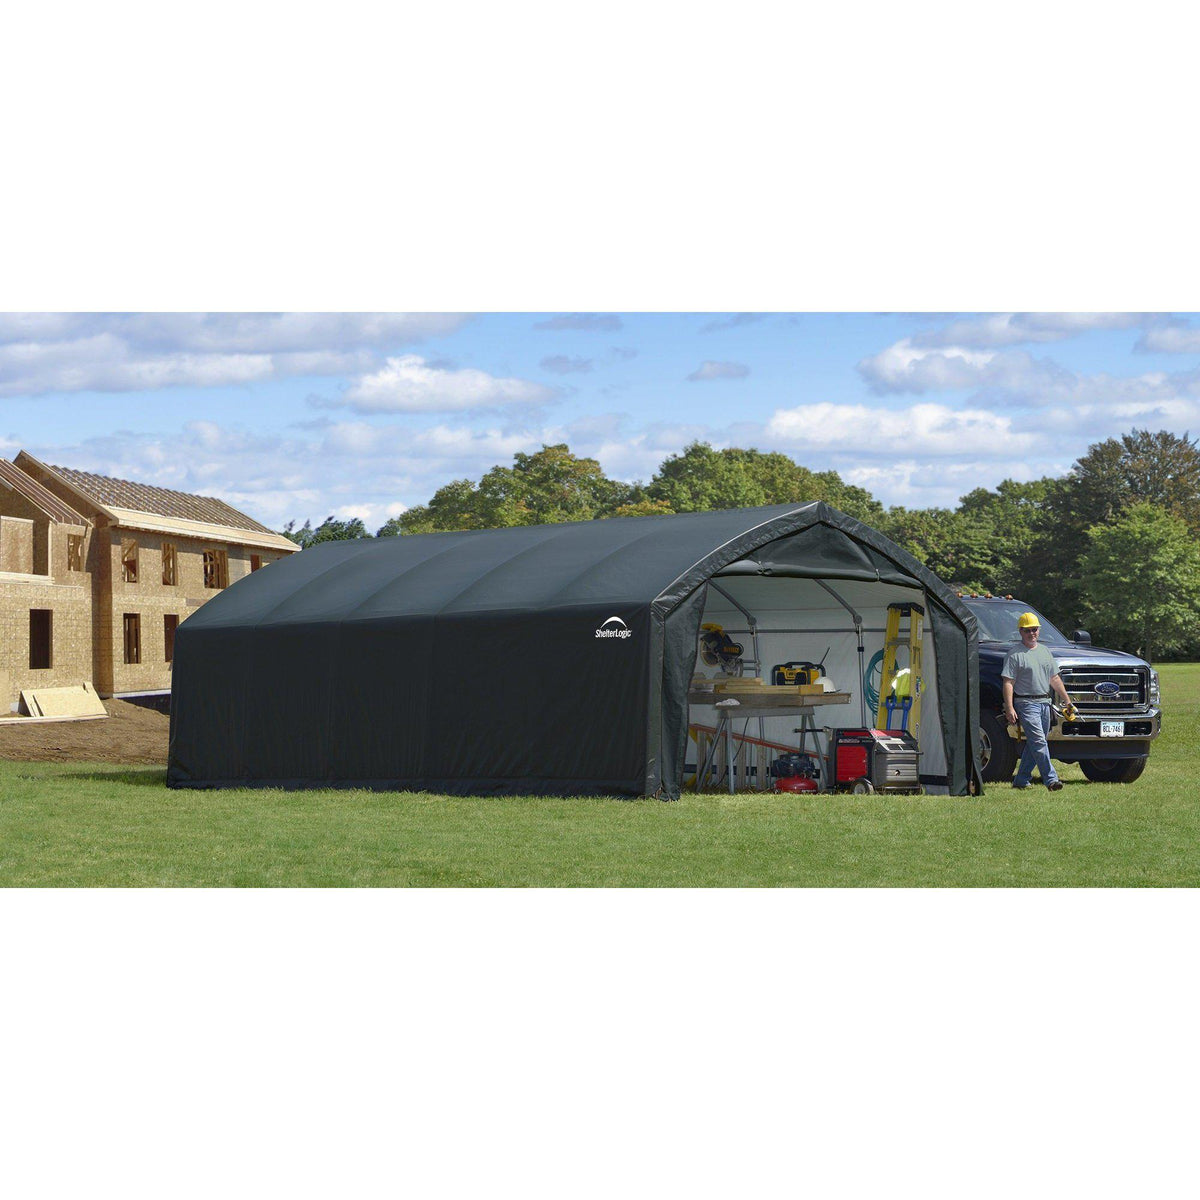 ShelterLogic 84580 Shelter ft Garages, 12 x 25 x 9', green